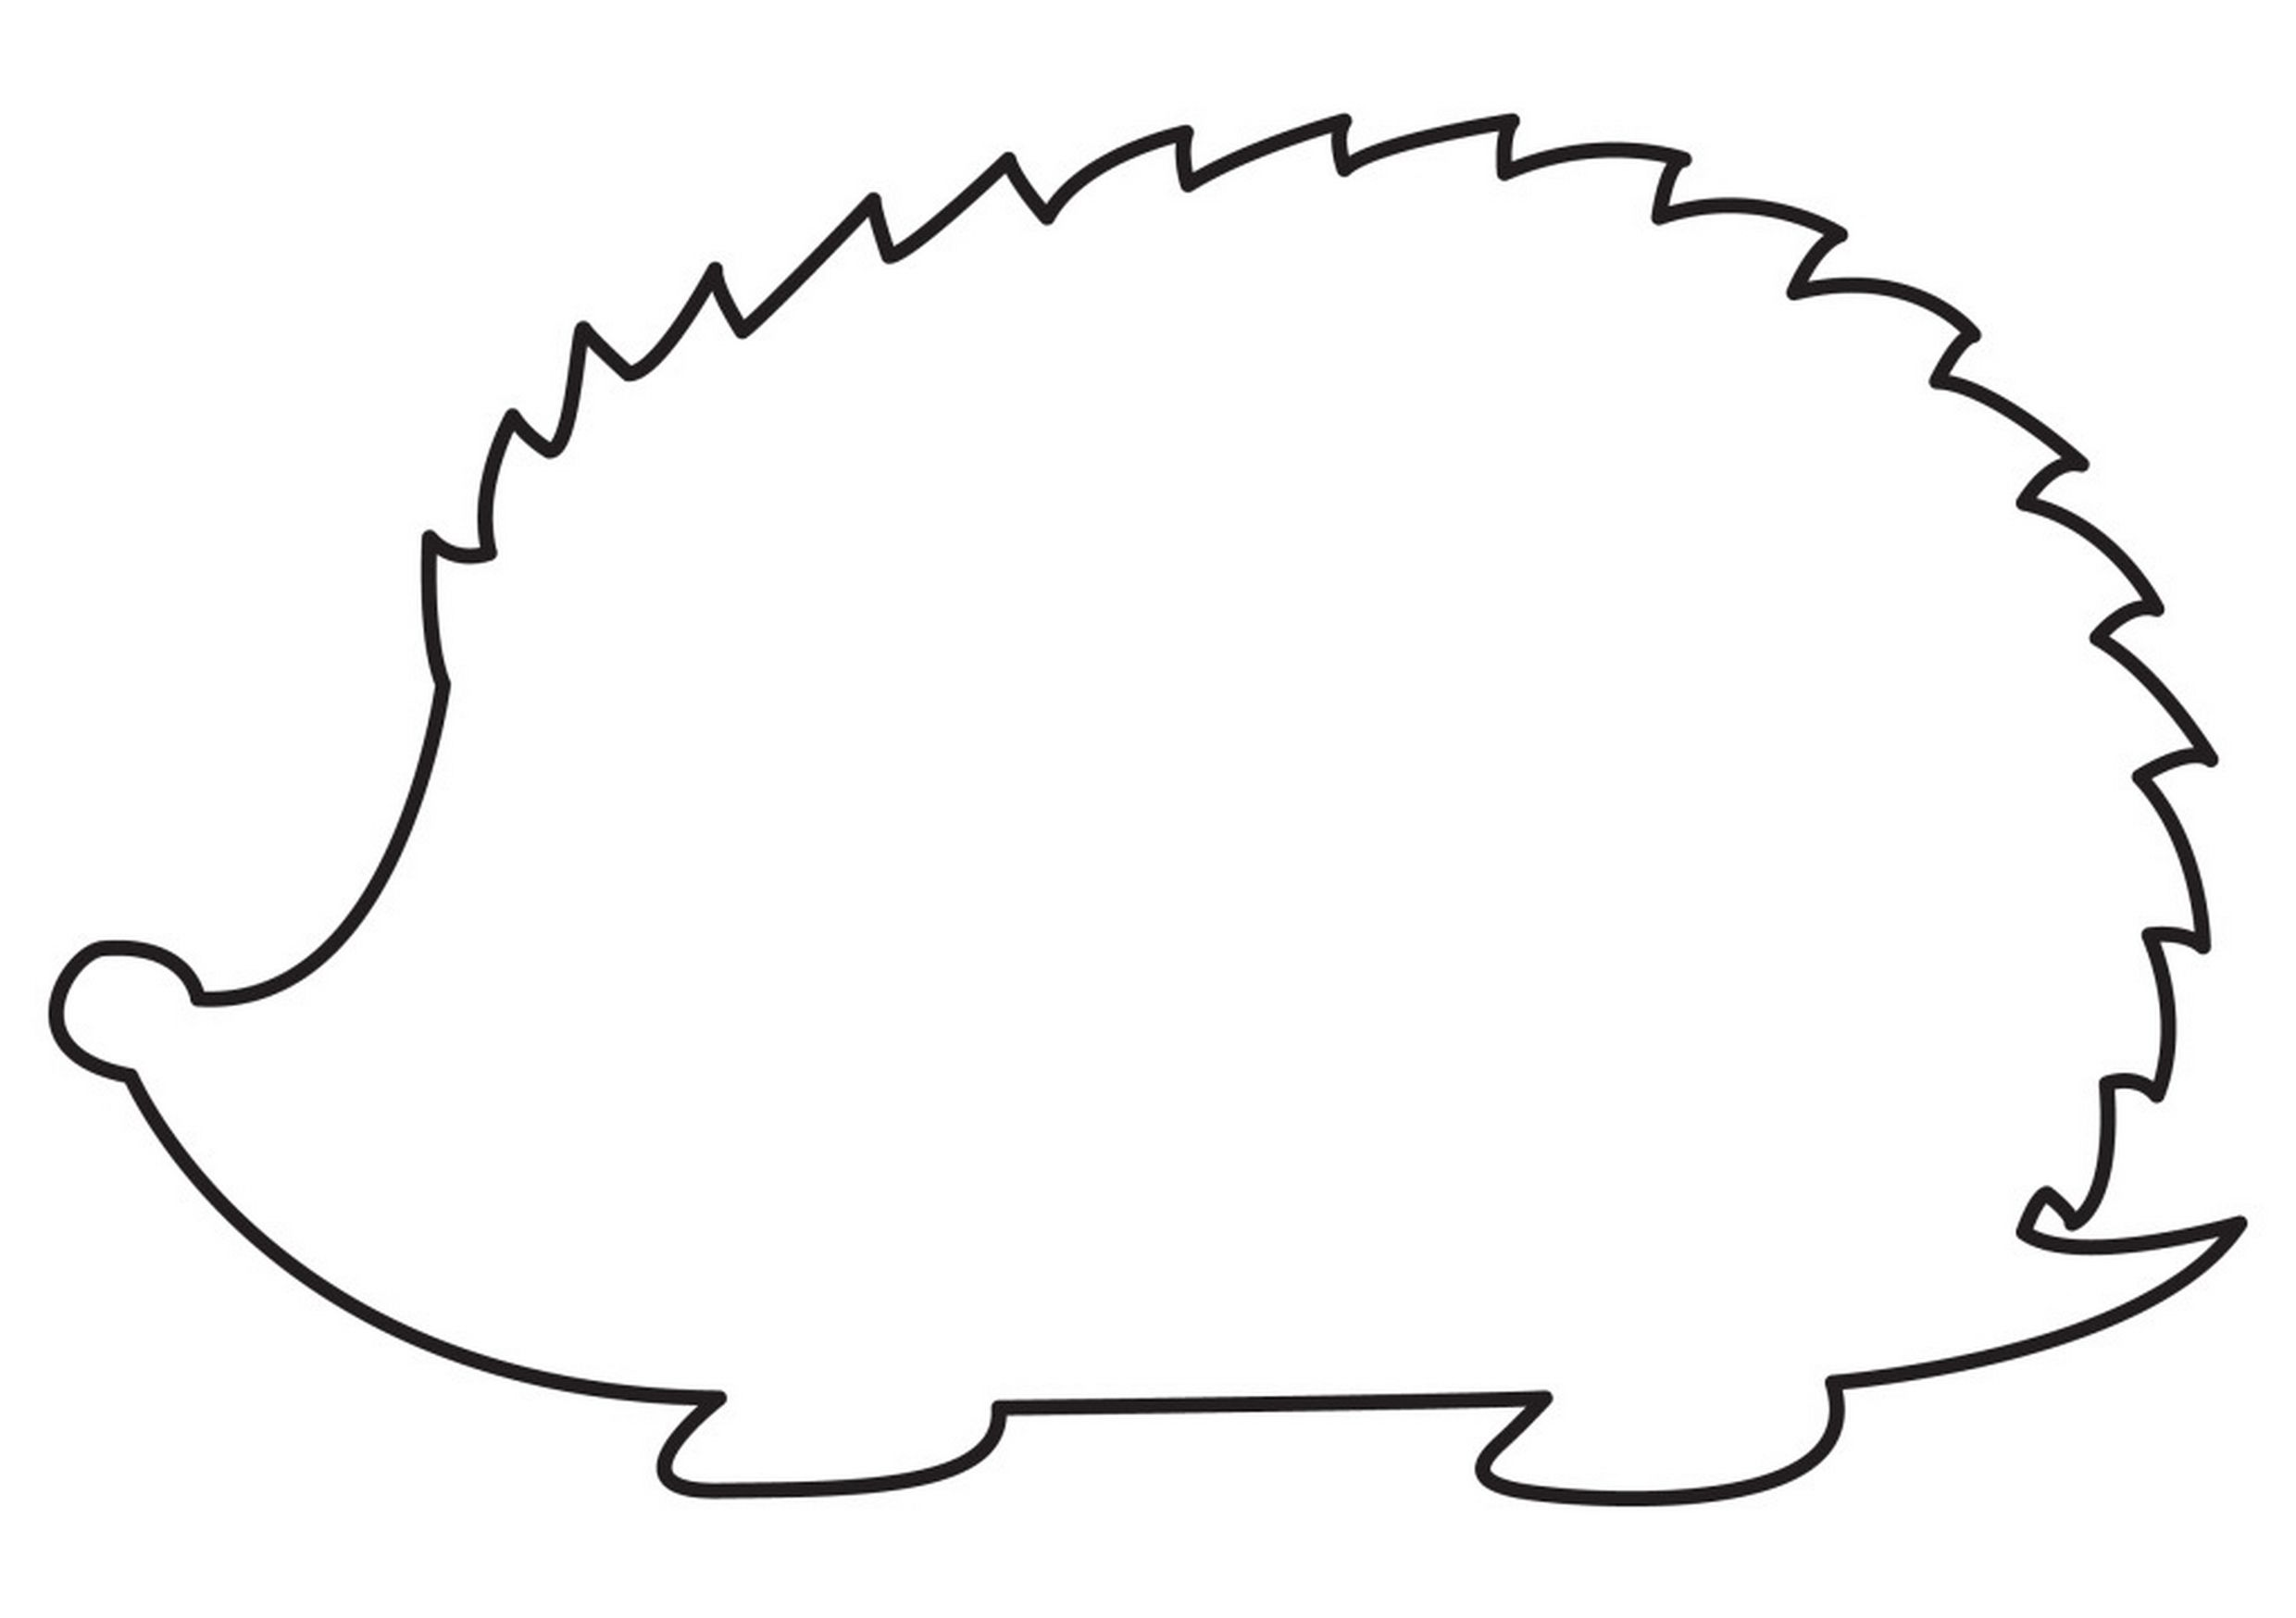 Hedgehog clipart hedgehog outline. How to sketch a